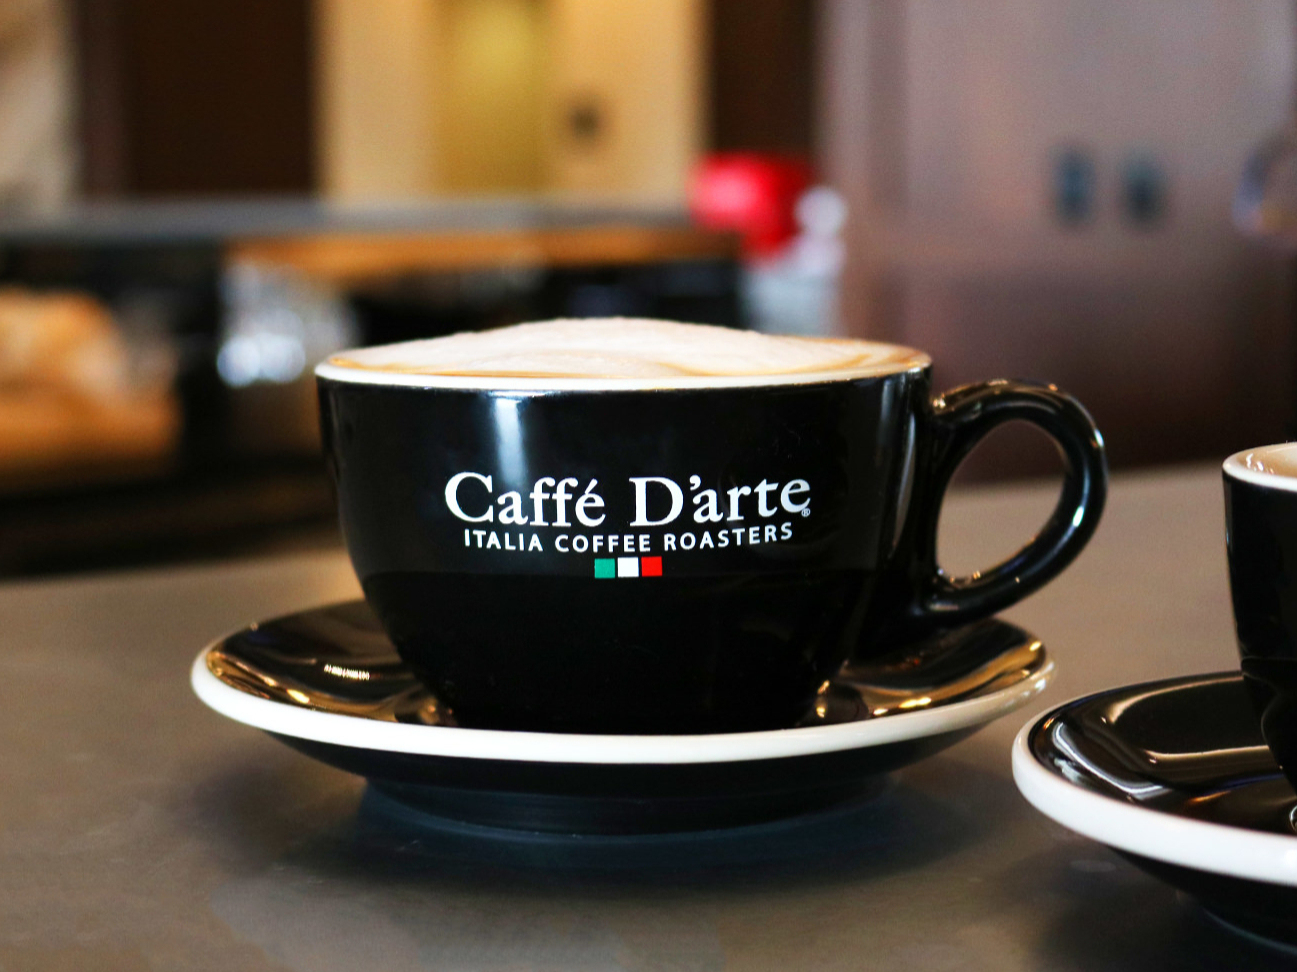 Caffe Darte latte at the Grove Hotel coffee bar